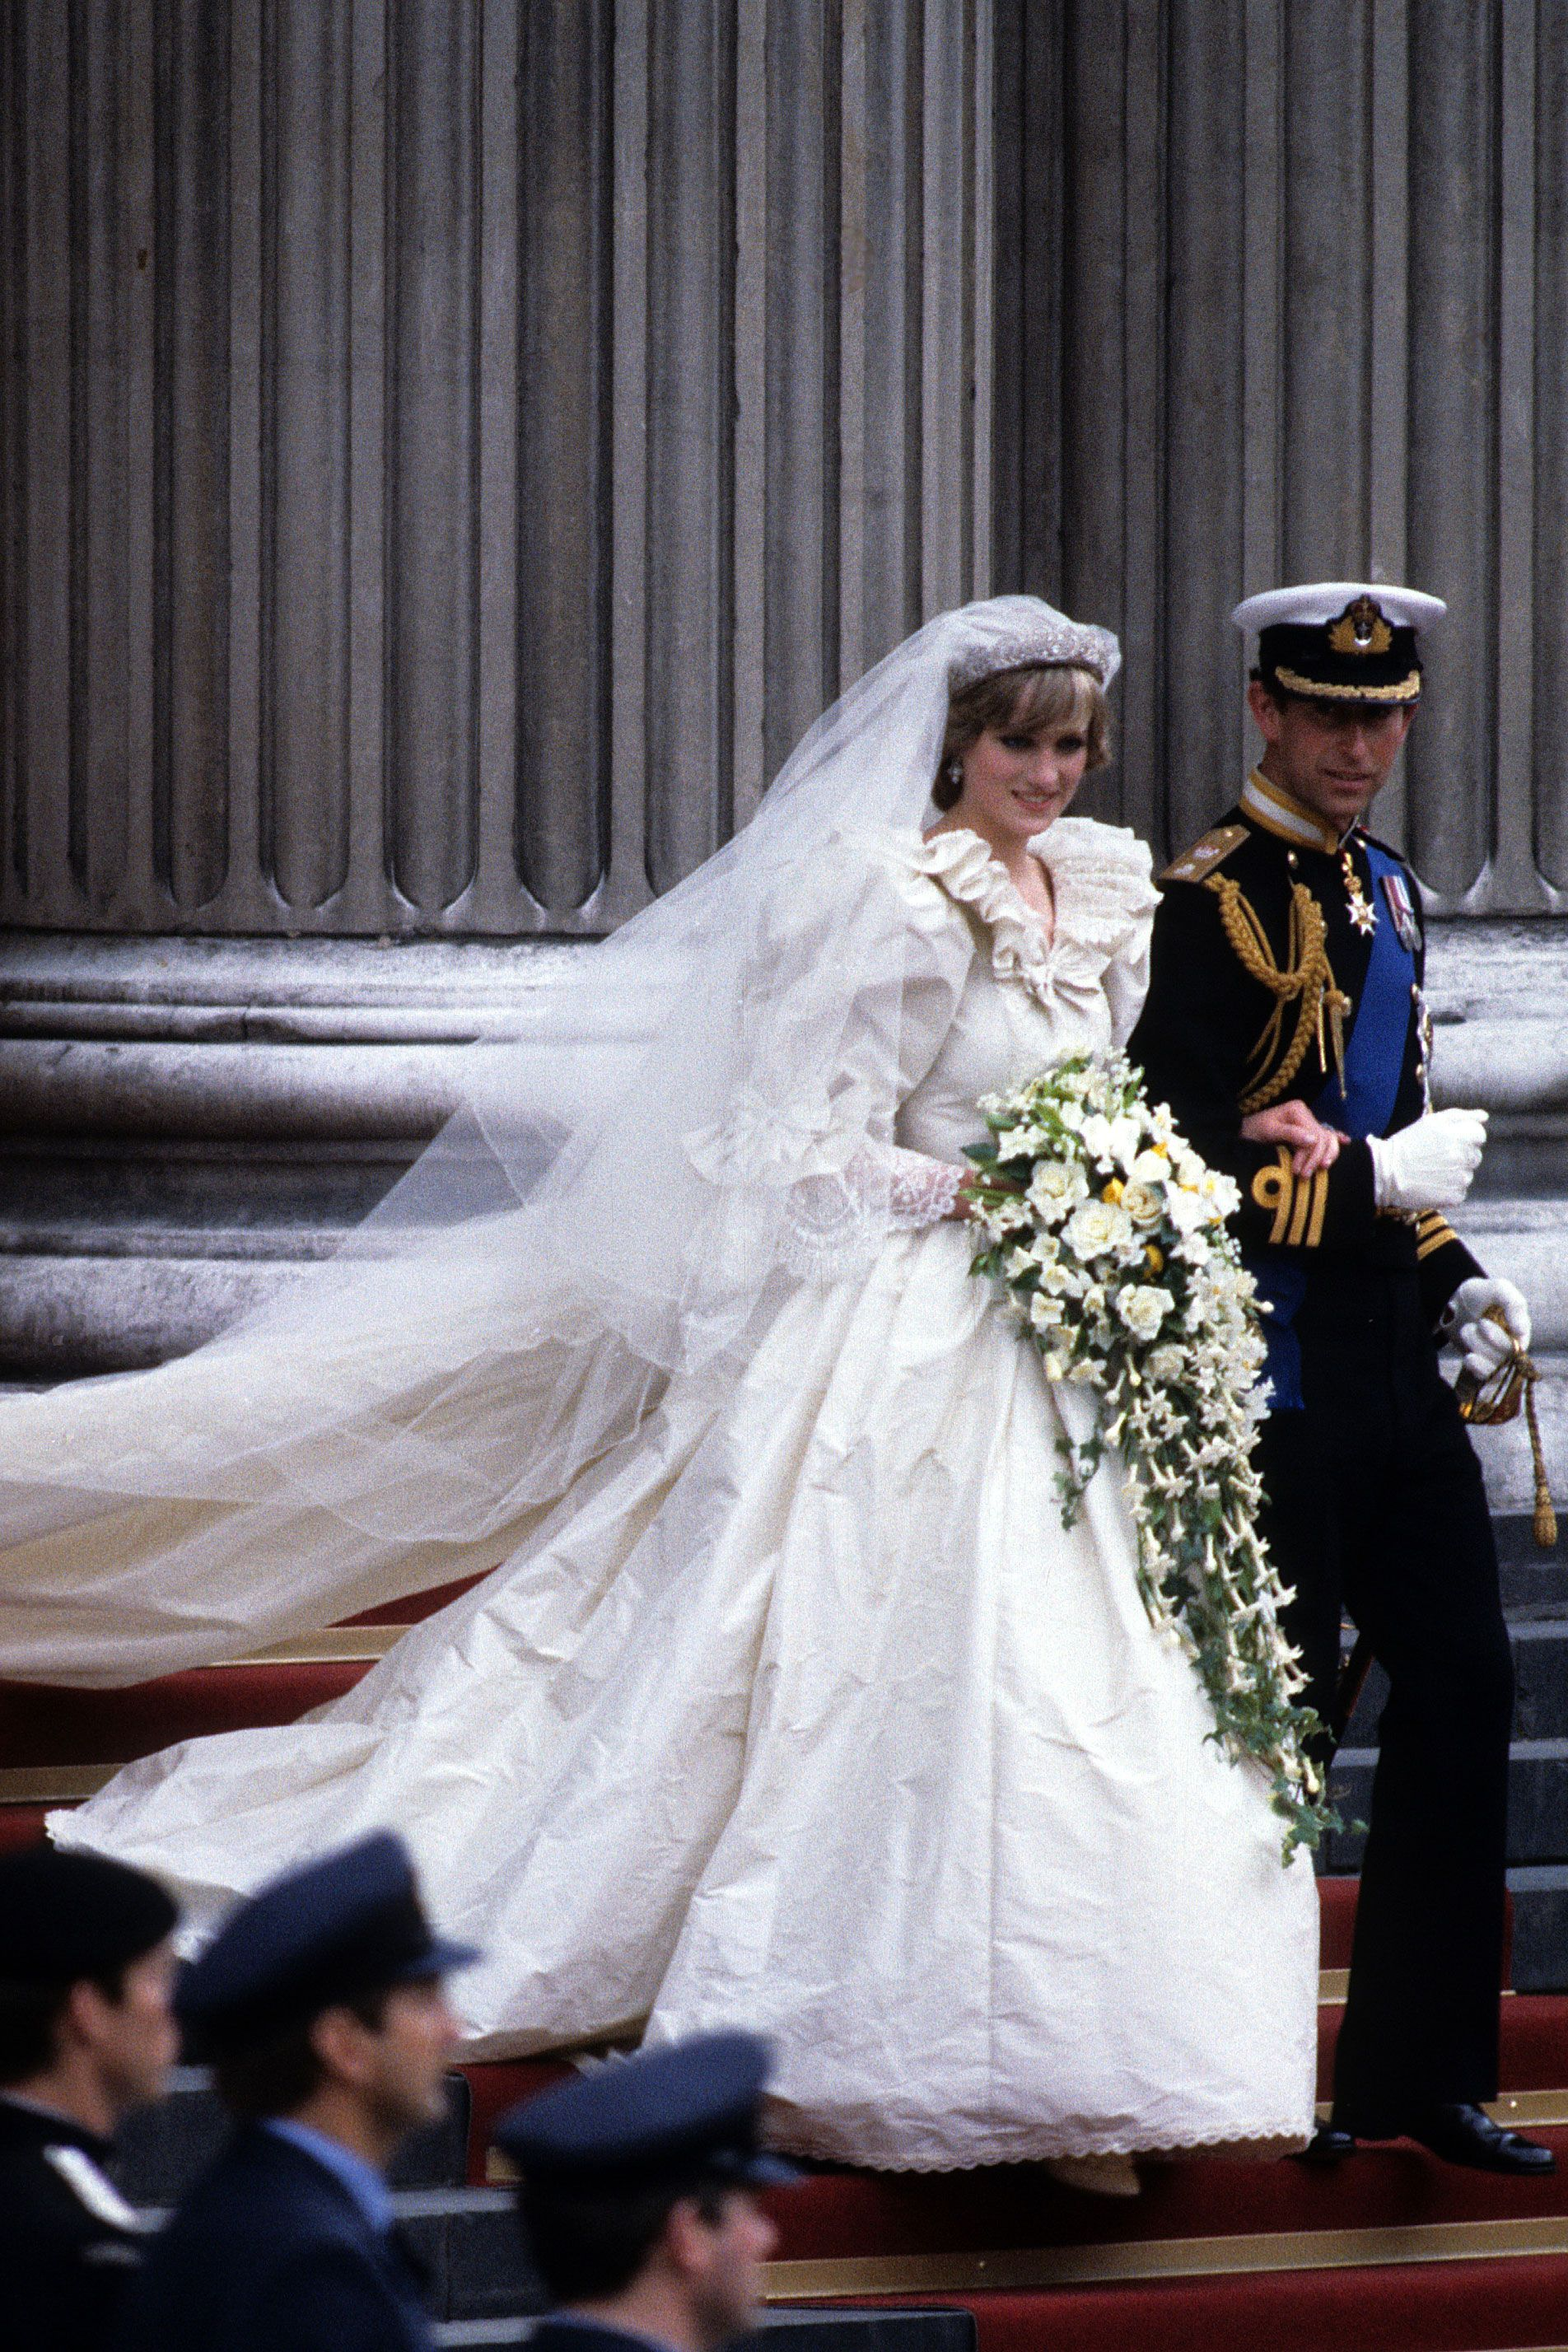 """<p>Diana's wedding gown, in all its 1980s glory, was instantly iconic after her nuptials aired to an estimated TV audience of 750 million.&nbsp&#x3B;</p><p><strong data-redactor-tag=""""strong"""" data-verified=""""redactor"""">RELATED: </strong><a href=""""http://www.redbookmag.com/love-sex/relationships/news/g4459/princess-diana-prince-charles-rare-wedding-photos/"""" target=""""_blank"""" data-tracking-id=""""recirc-text-link""""><strong data-redactor-tag=""""strong"""" data-verified=""""redactor"""">Rare Photos From Princess Diana and Prince Charles' Wedding Released</strong></a></p>"""